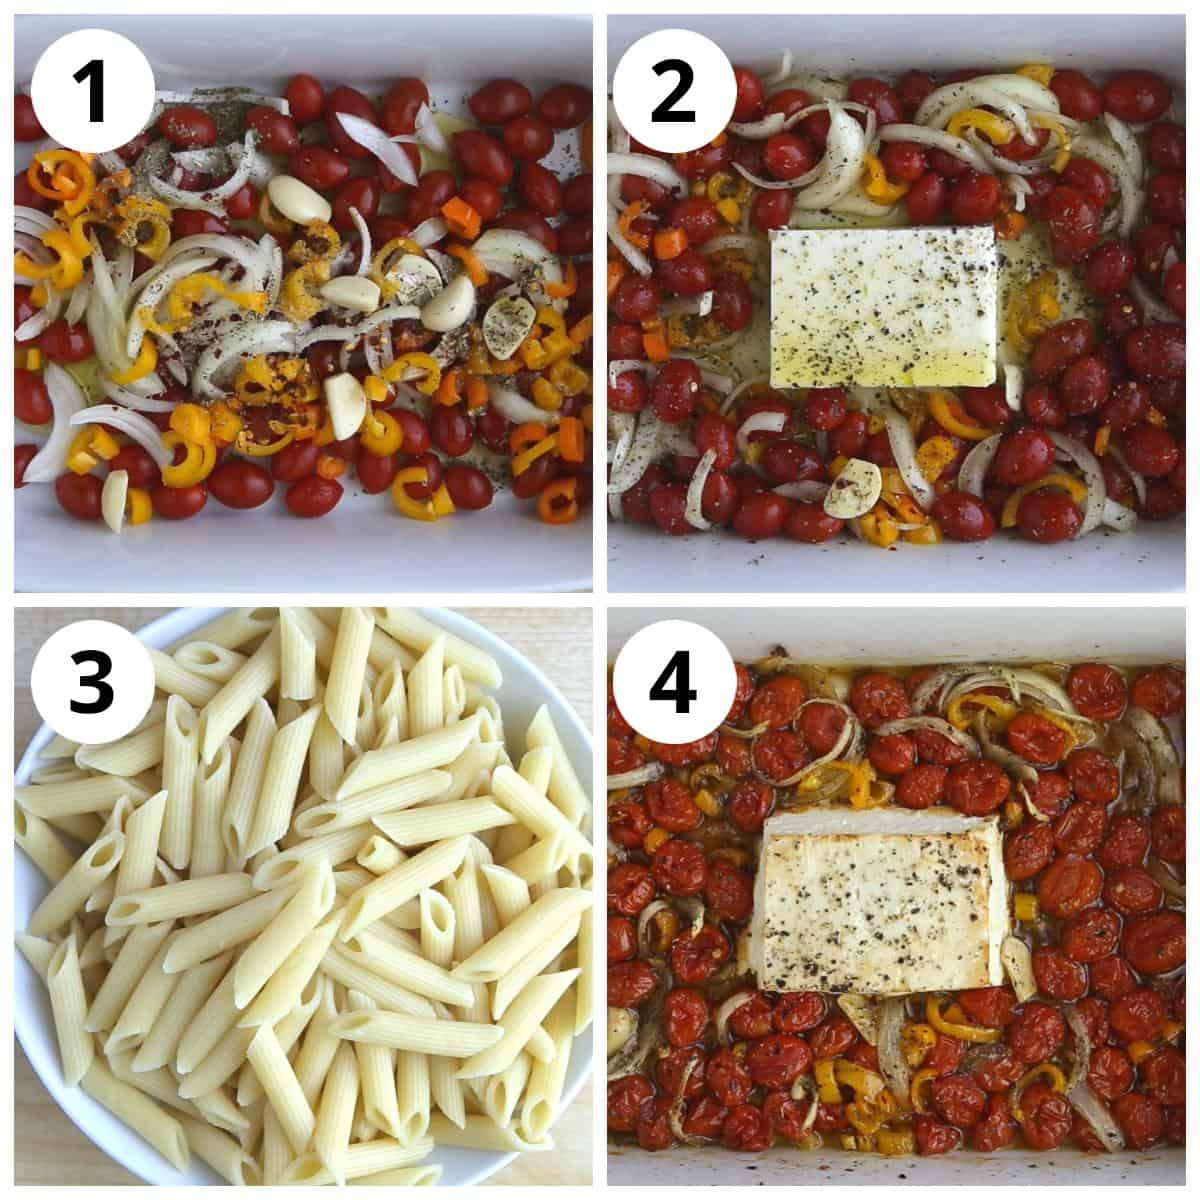 Steps for baking the feta cheese and tomatoes and cooking pasta